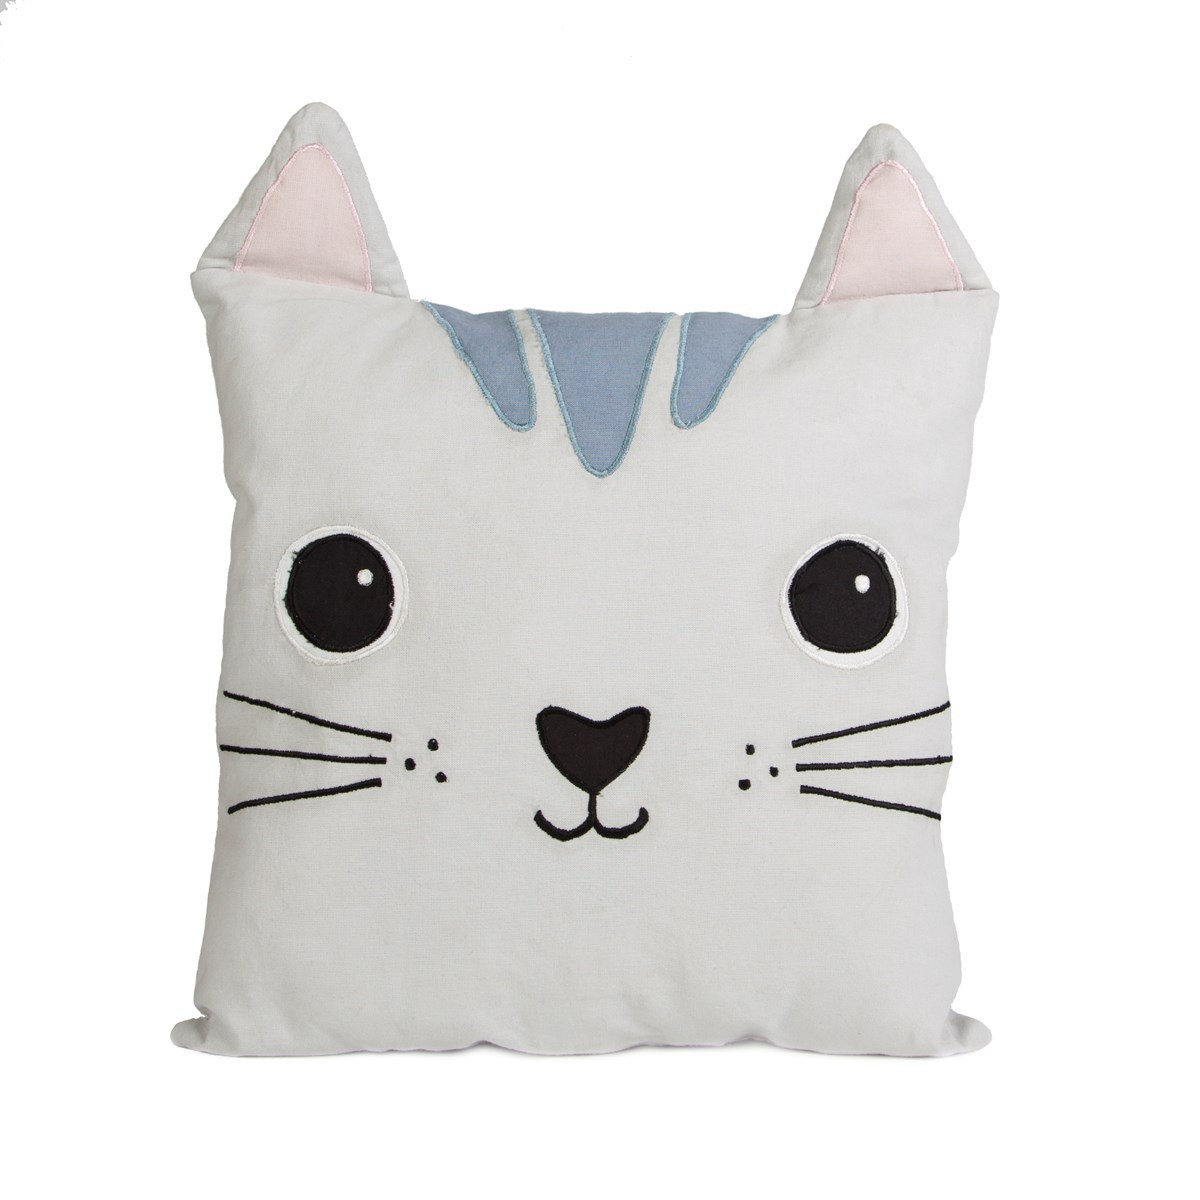 Coussin Coussin Nori Chat Kawaii Friends Coussin Nori Chat Kawaii Friends